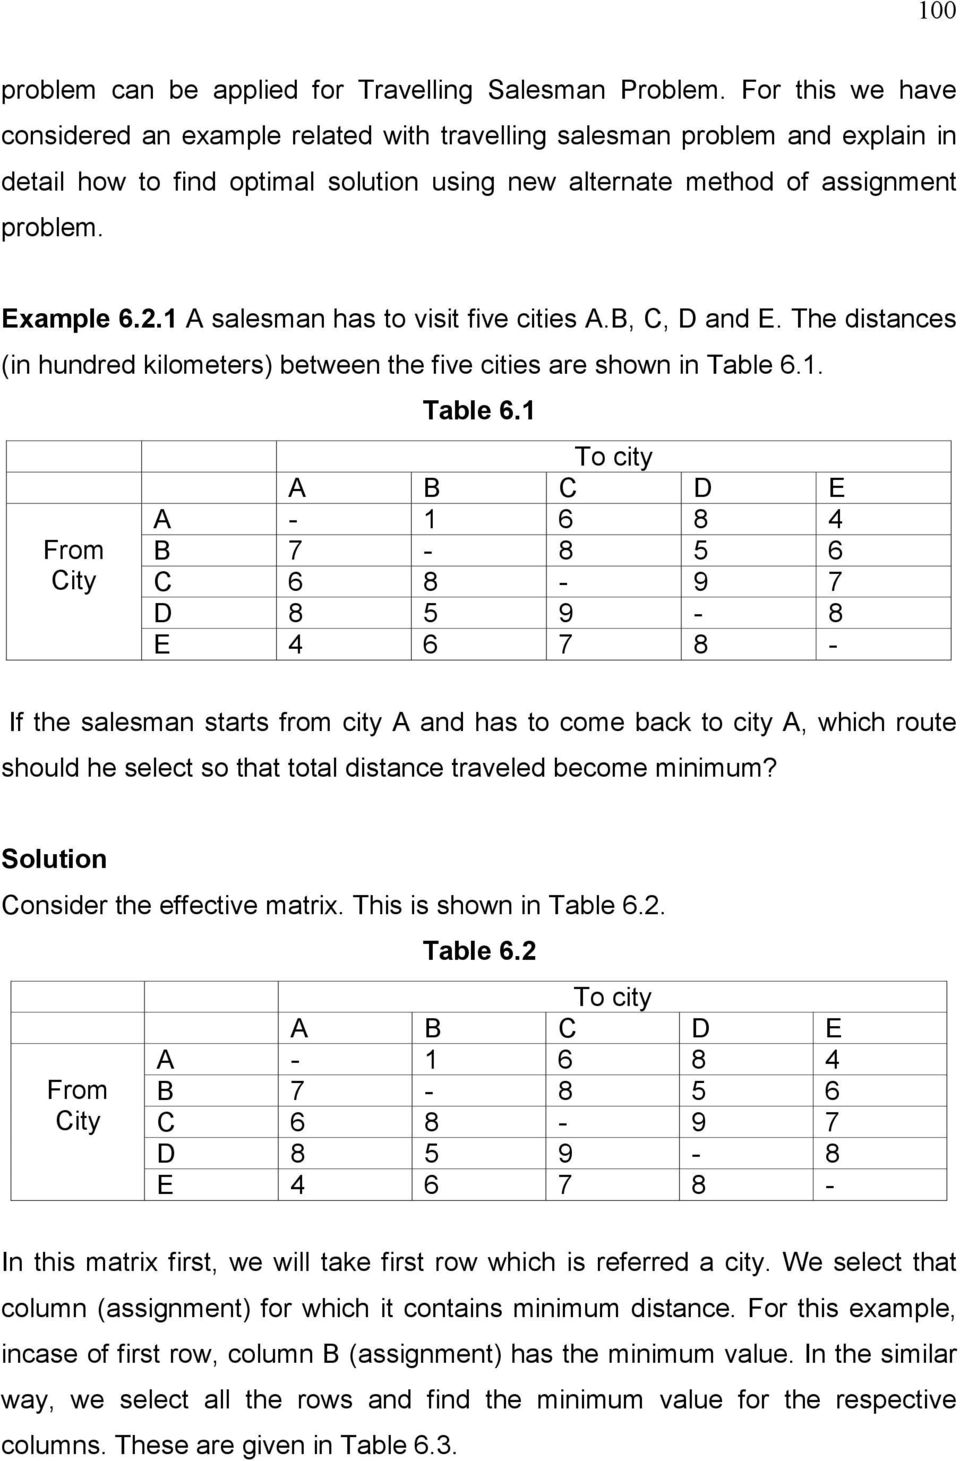 1 salesman has to visit five cities.,, and. The distances (in hundred kilometers) between the five cities are shown in Table 6.1. From ity Table 6.